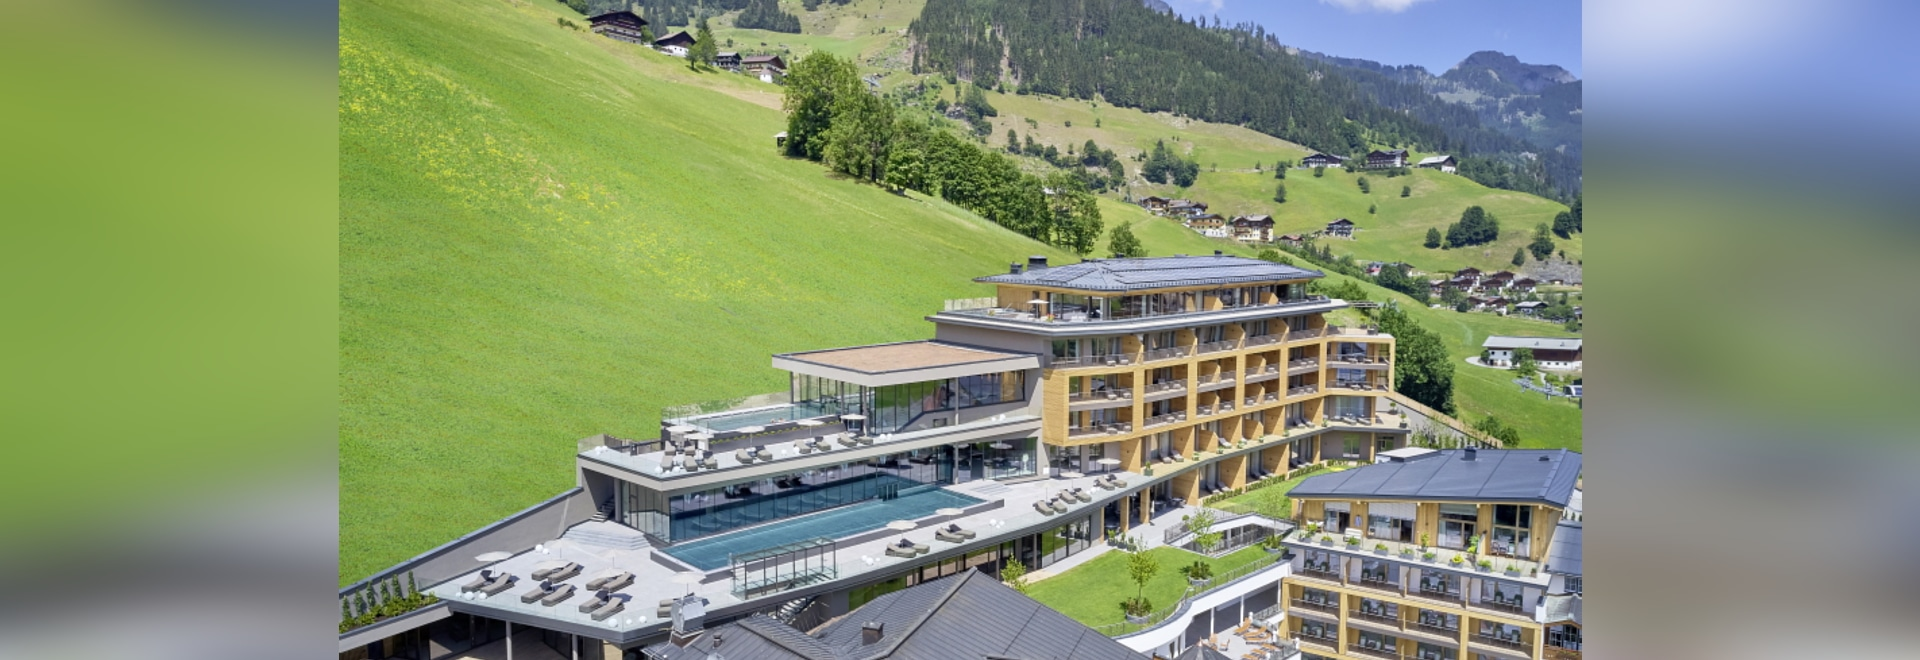 Hotel resort realizes building control with PEAKnx